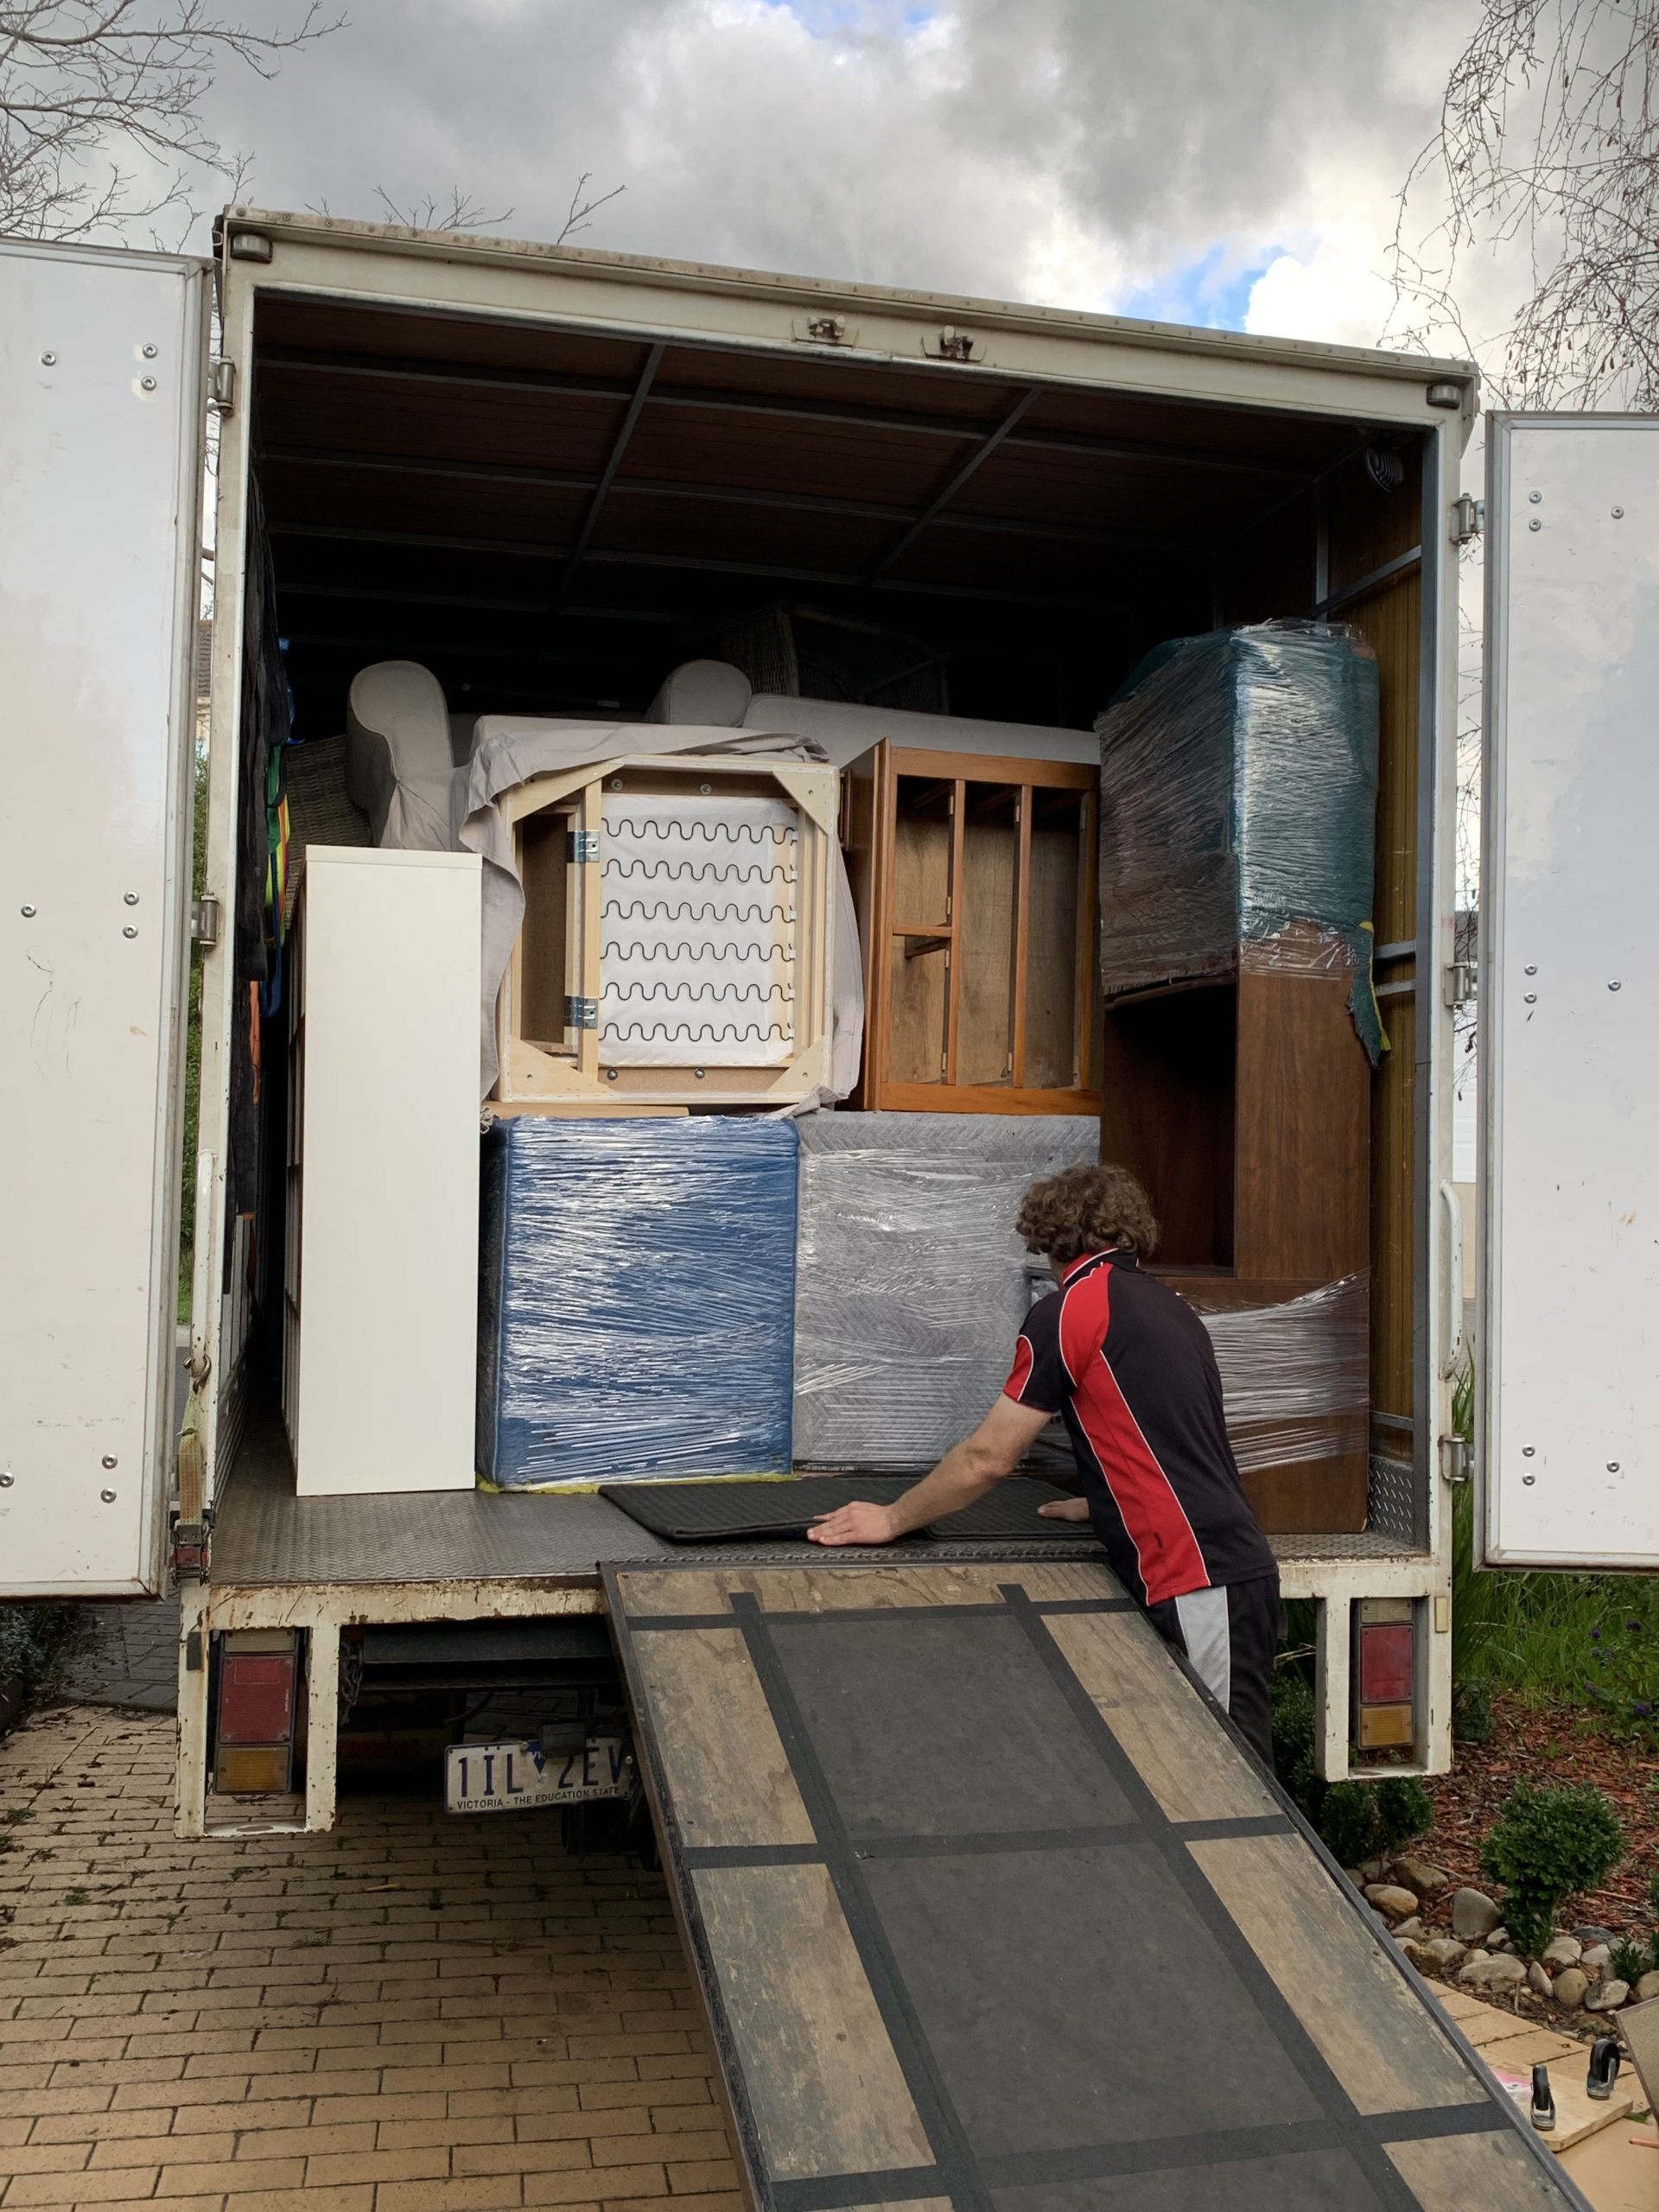 Need A Subcontractor Truckie For Your Business? Here's How Removalist On The Run Can Help.